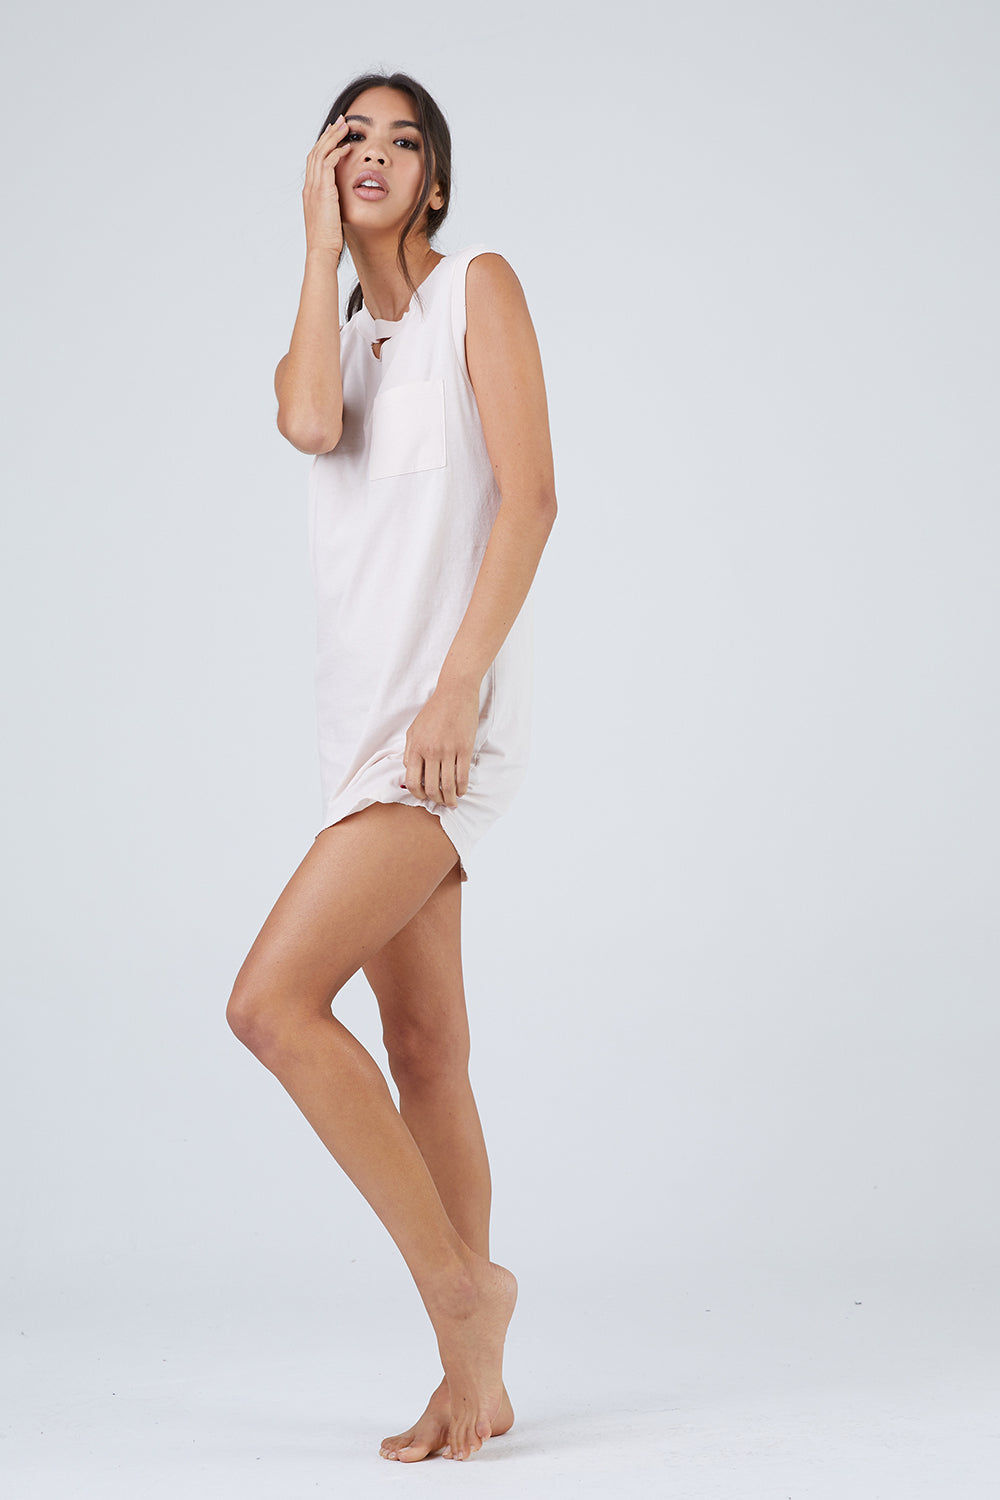 N:PHILANTHROPY Shot High Neck Mini Dress - Petal Pink Dress | Petal Pink| N:PHILANTHROPY Shotgun High Neck Mini Dress - Petal Pink. Features:  High neckline with cutout detail Raw edge cap sleeves 100% Cotton jersey Machine wash cold like colors, lay flat to dry Made in LA Front View